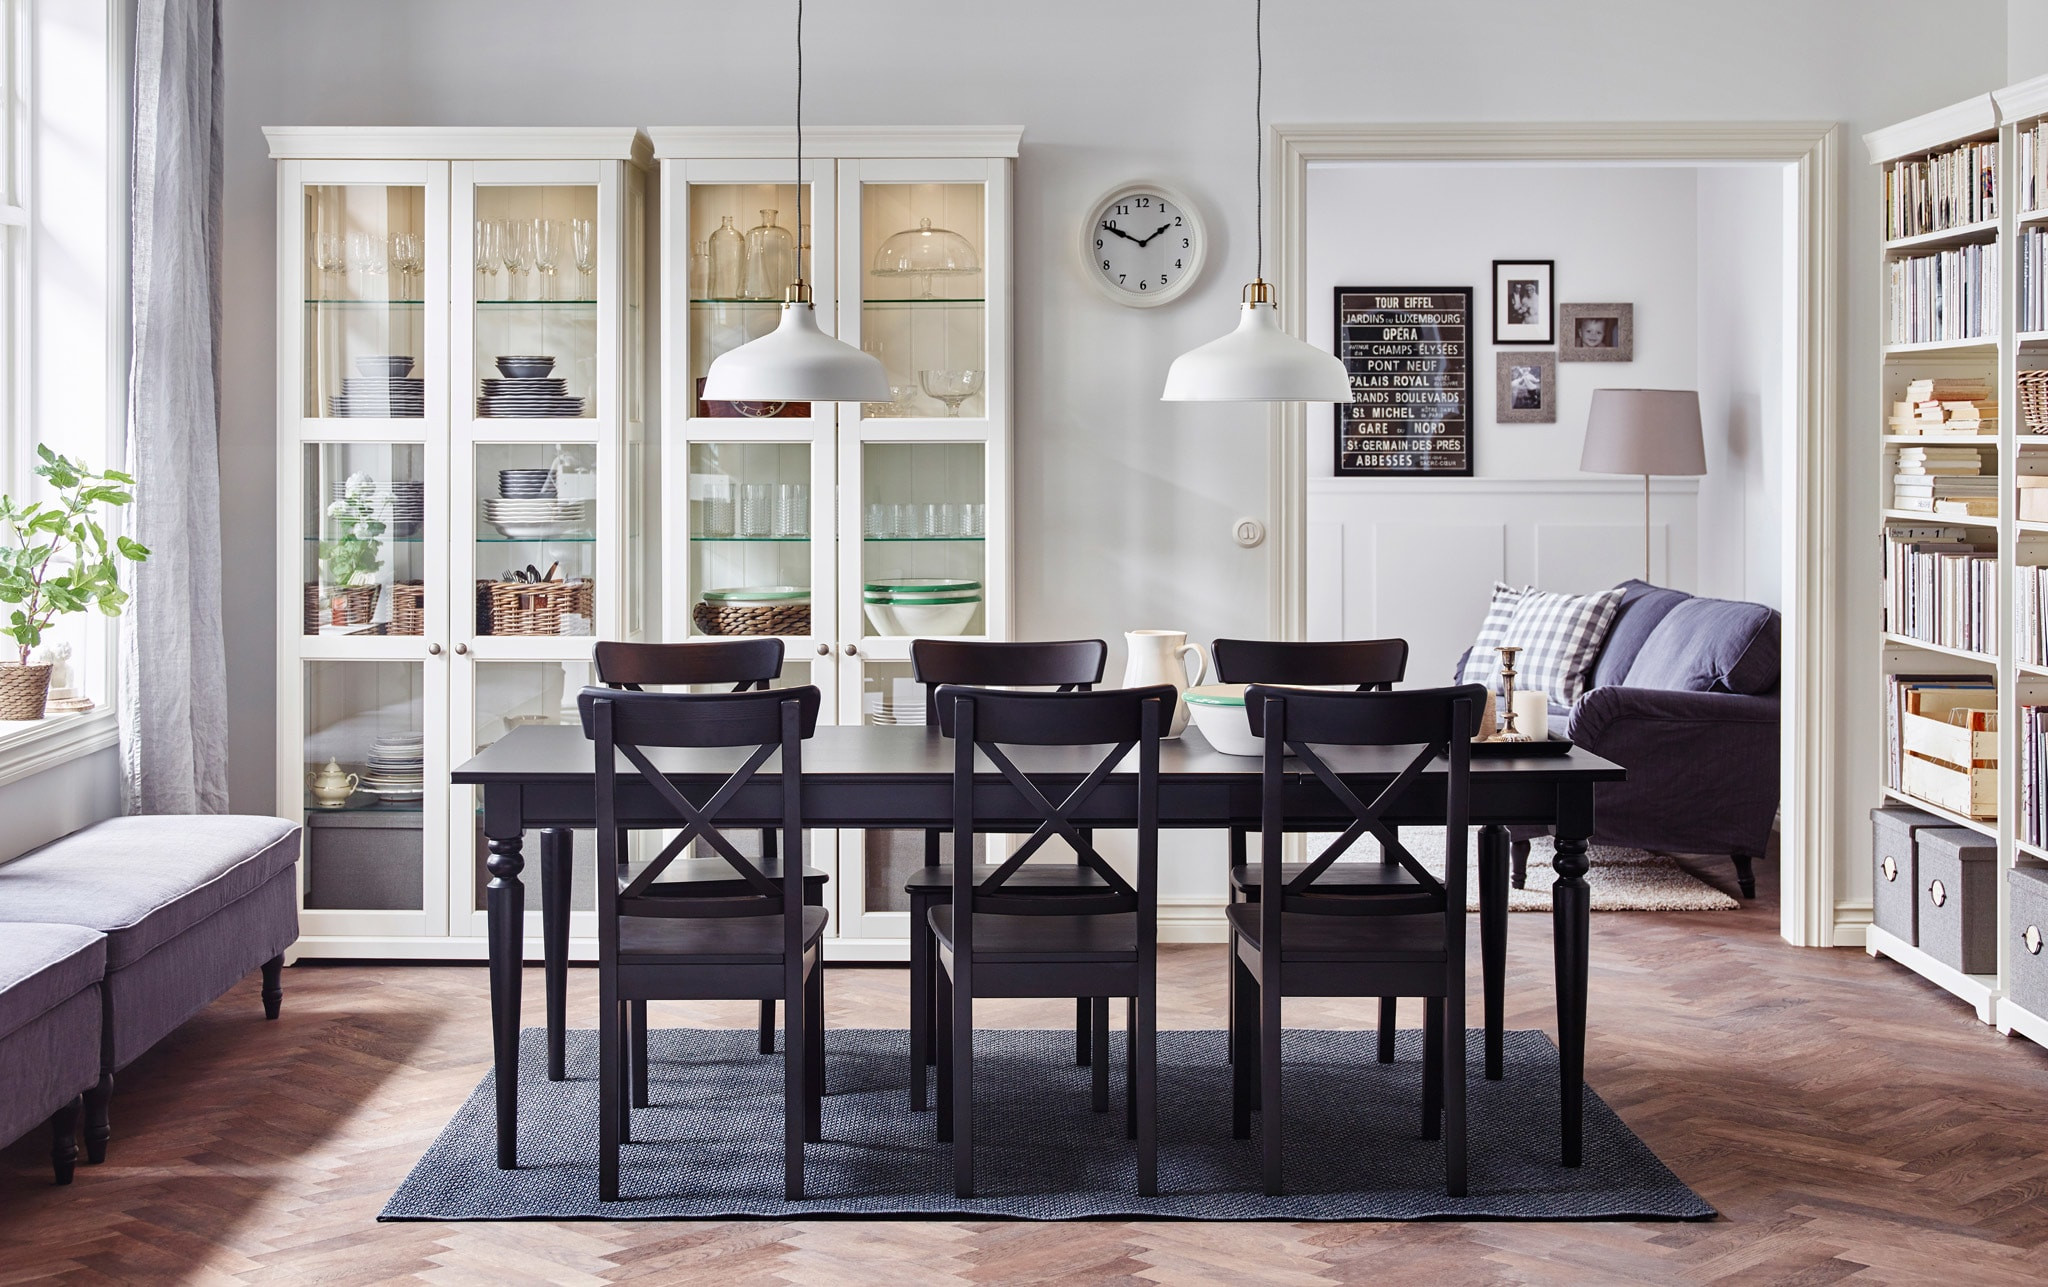 Best ideas about Ikea Dining Room Tables . Save or Pin Dining Room Furniture & Ideas Now.